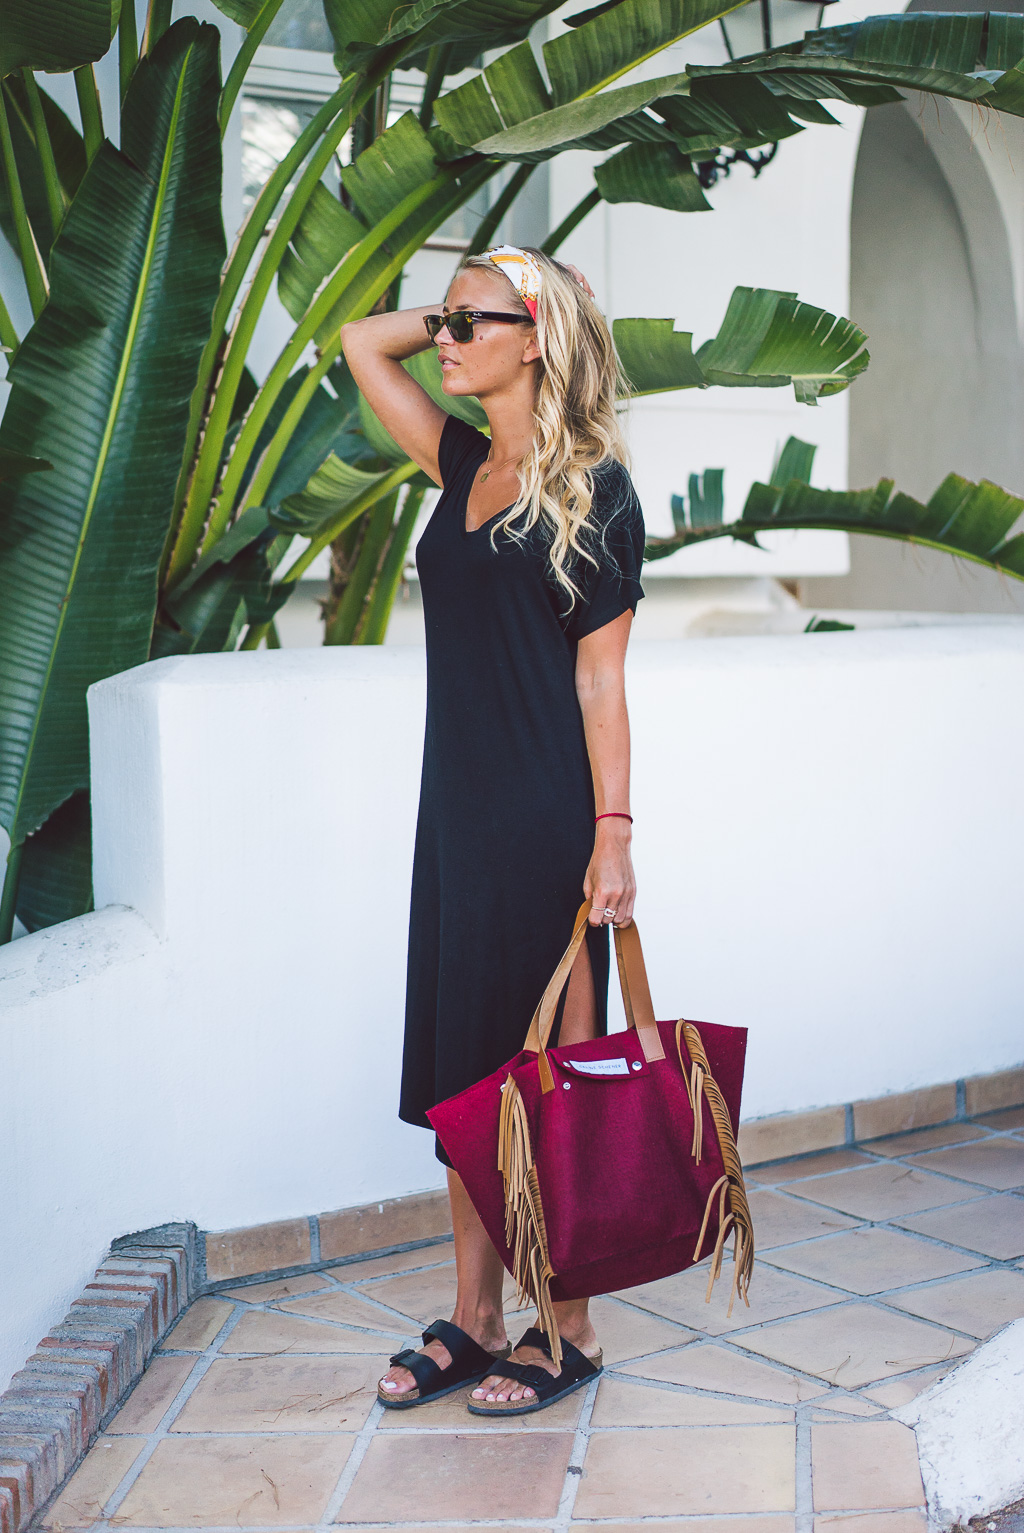 The bandana can we worn in many ways. Here worn as a head band. Via Janni Deler. Bag: Celine Schener, Shoes: Birkenstock